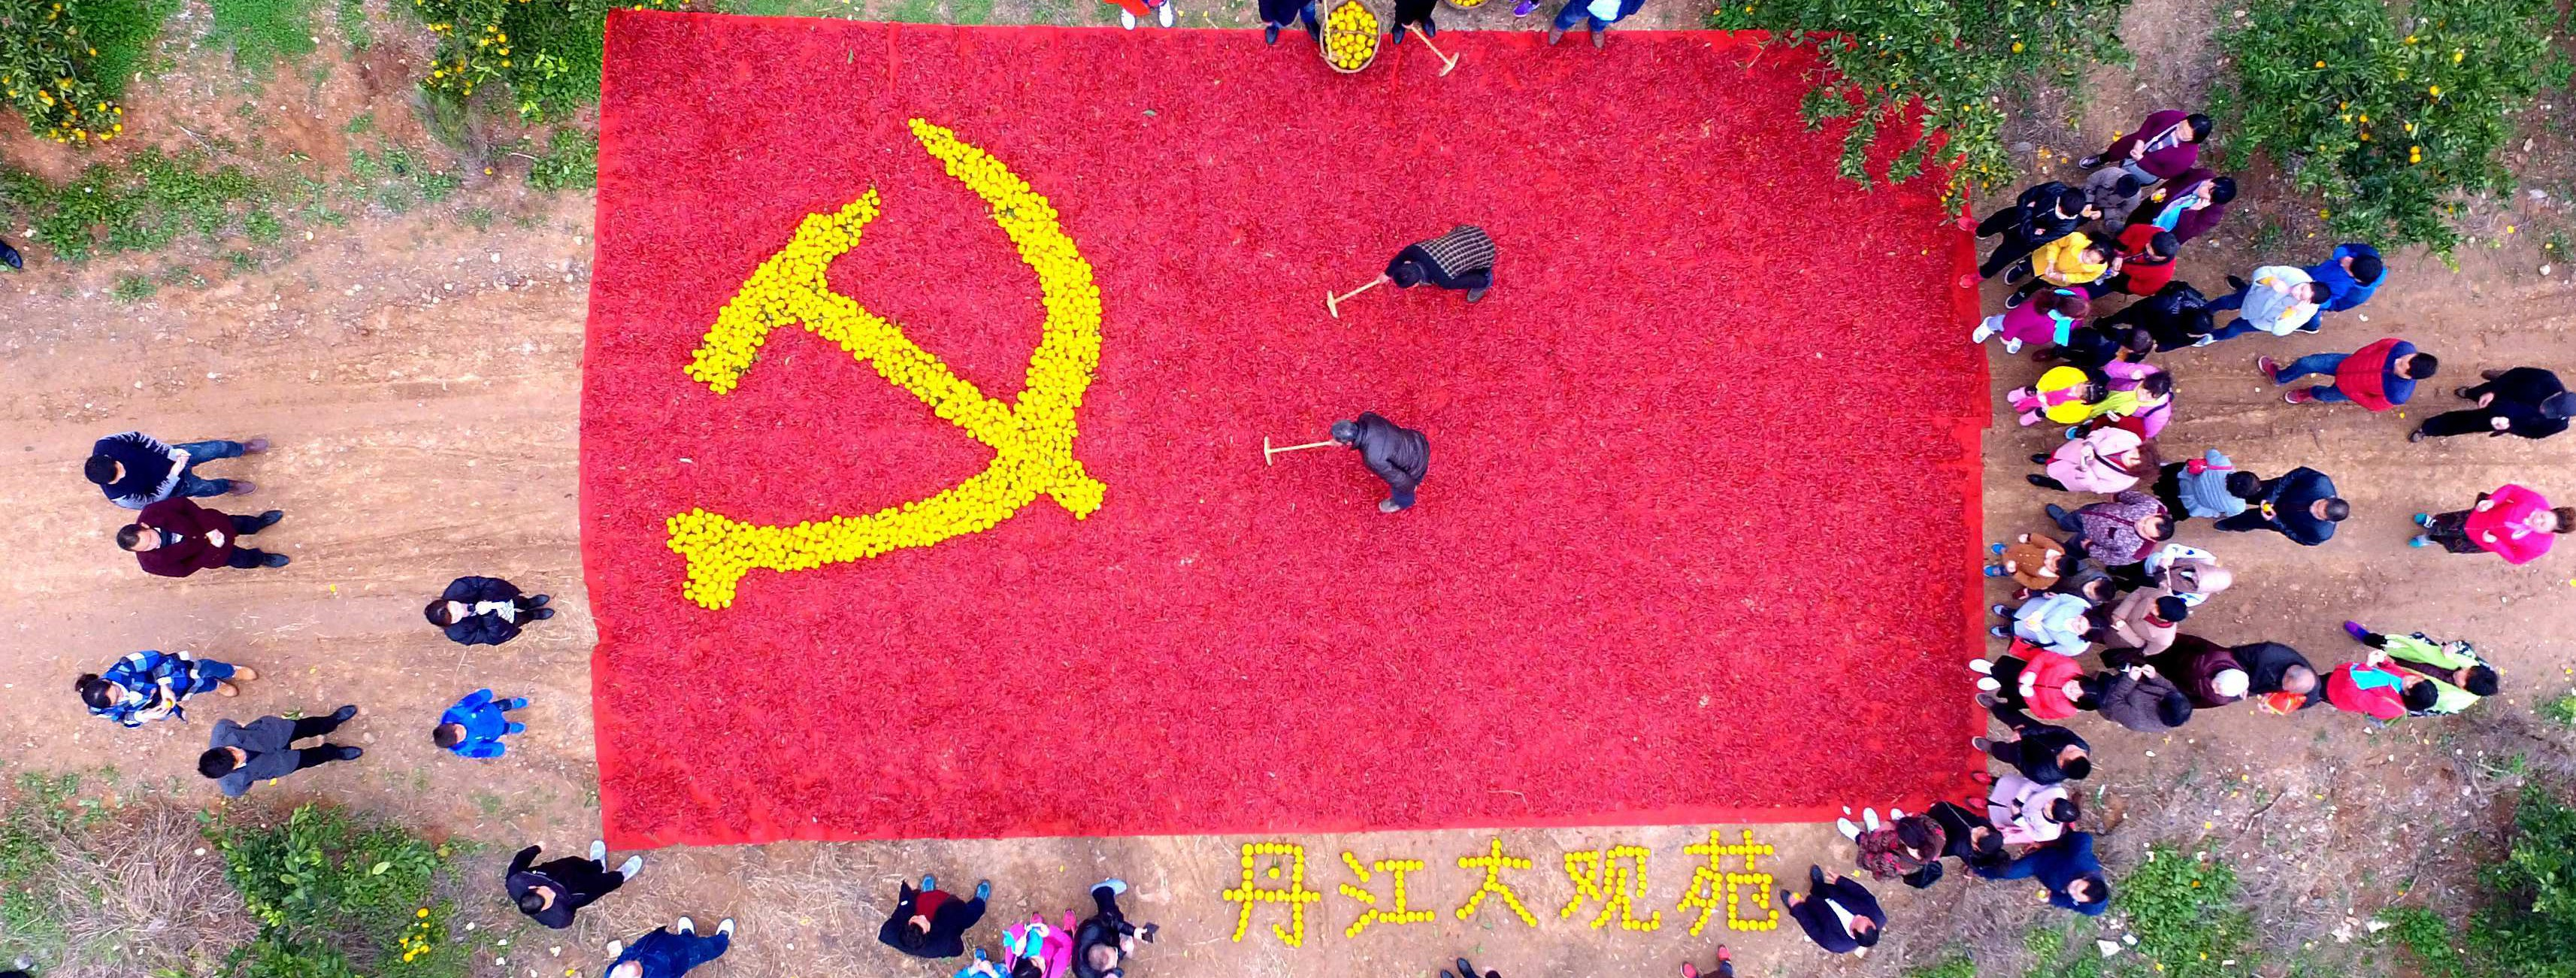 Communist Party of China flag depicted in oranges and red peppers in Nanyang (Photo: VCG via Getty Images)